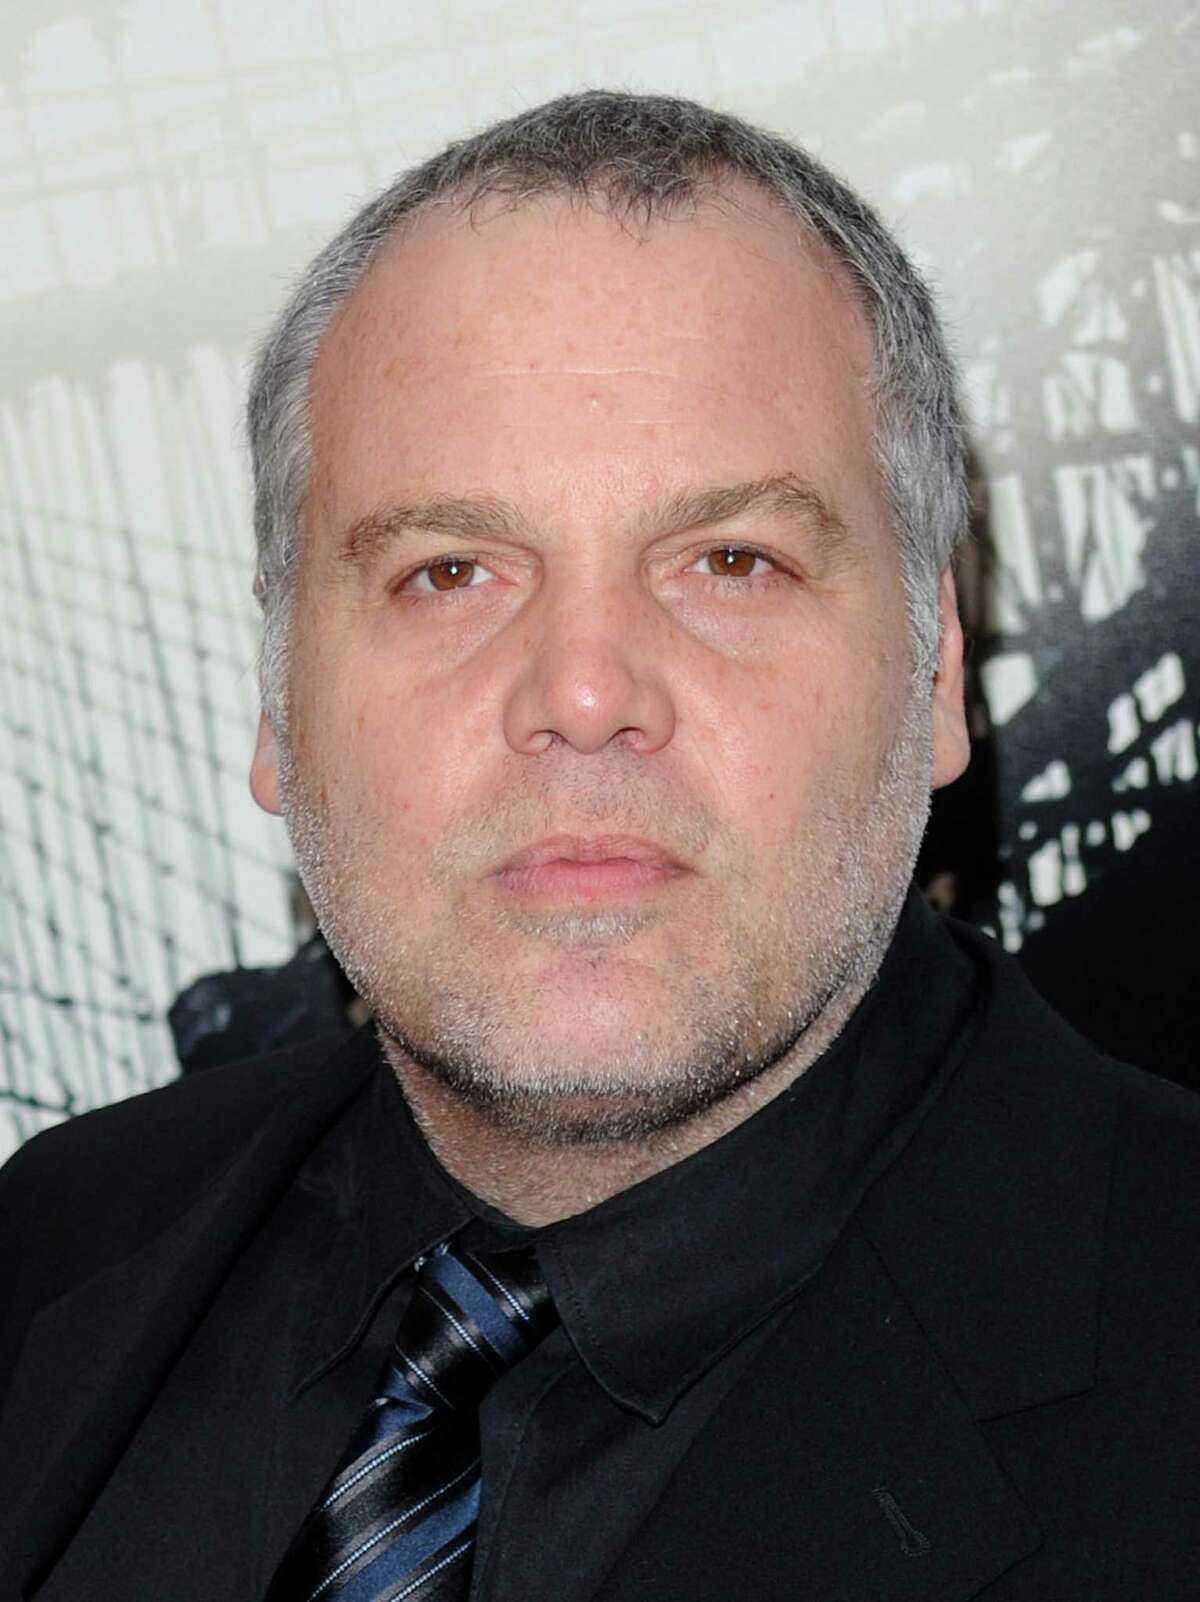 FILE - In this March 2, 2010 file photo, actor Vincent D'Onofrio attends the premiere of